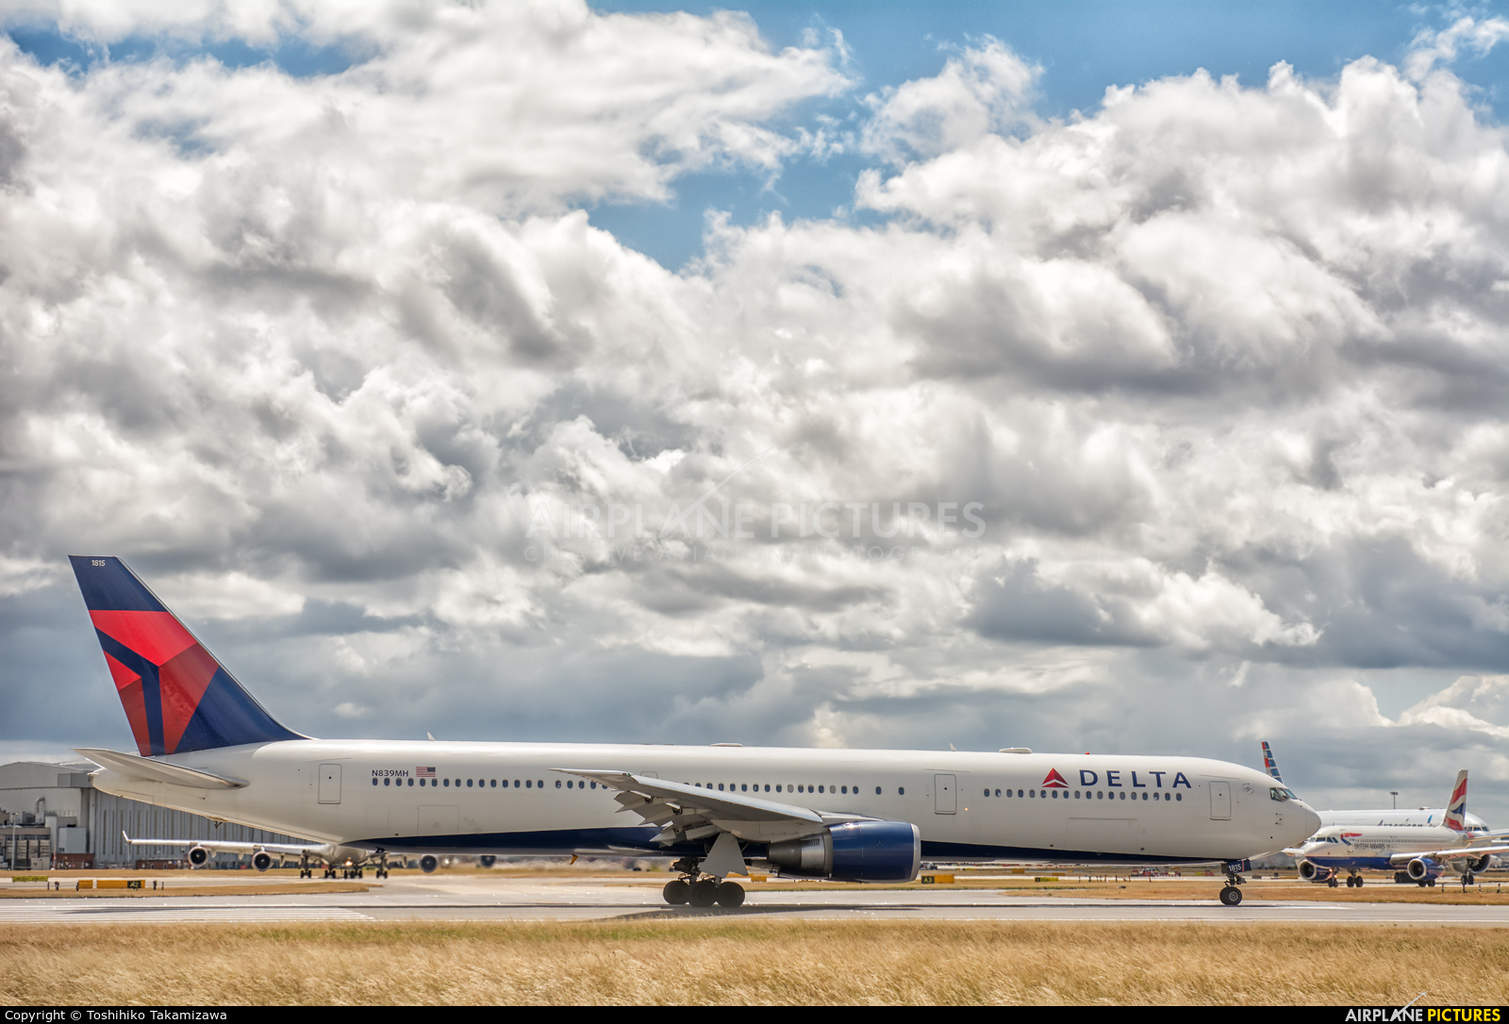 Employees at Delta Air Lines take home part of largest profit sharing payout in U.S. history